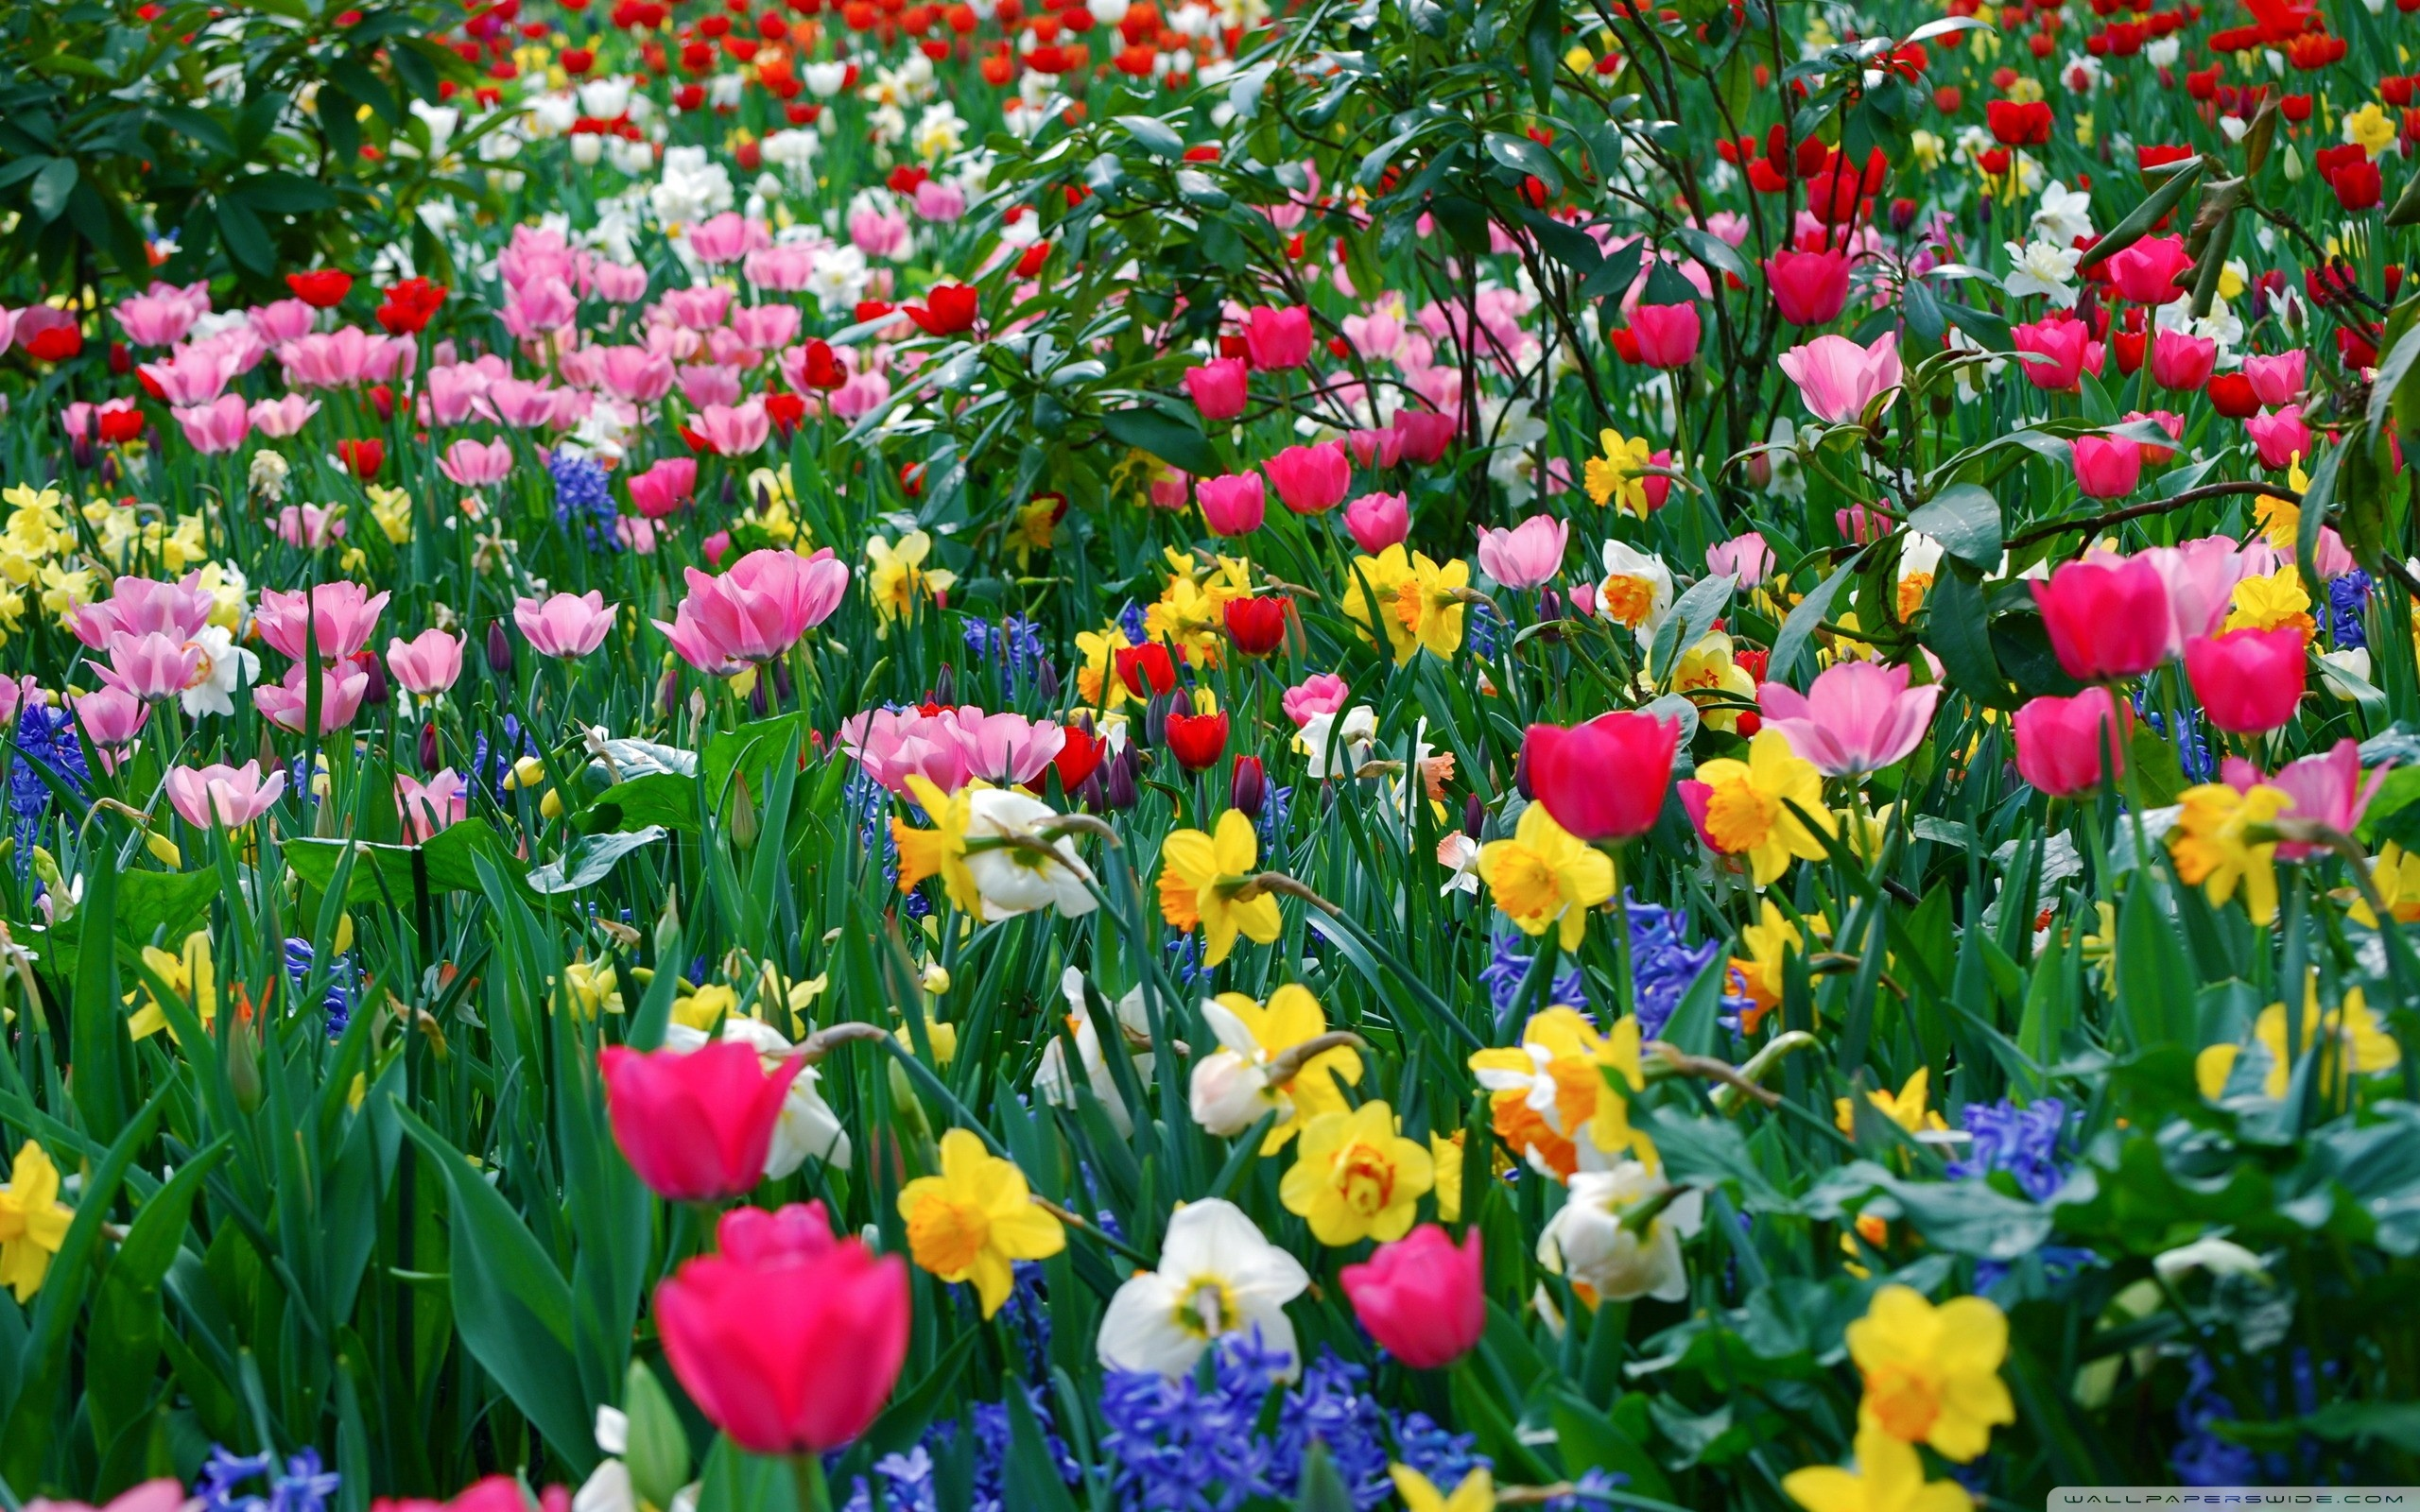 Spring Images Flowers Everywhere Hd Wallpaper And Background Photos